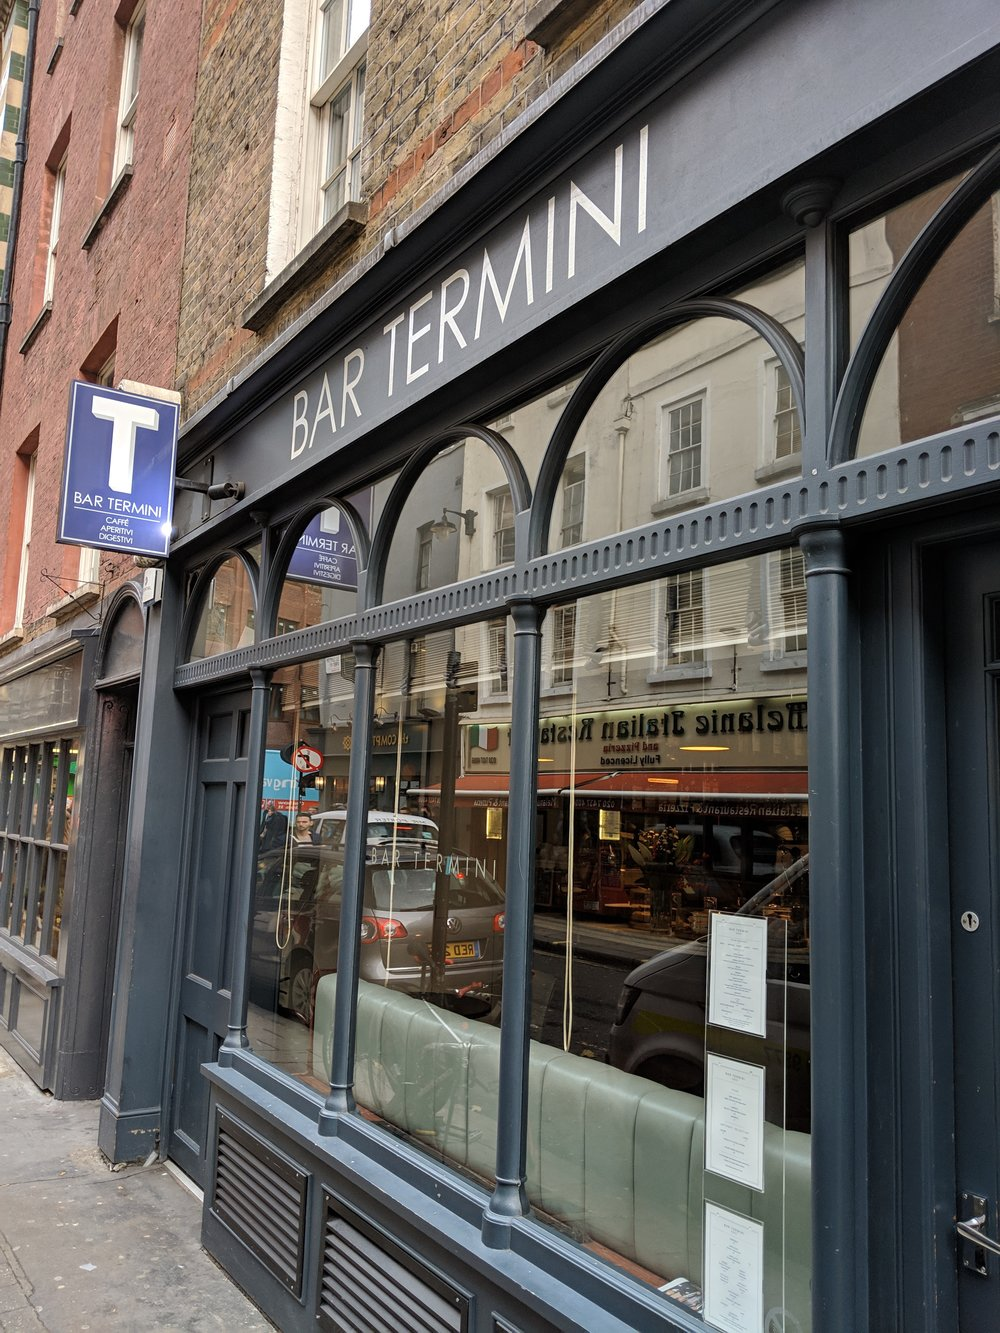 Exterior of the small and intimate Bar Termini